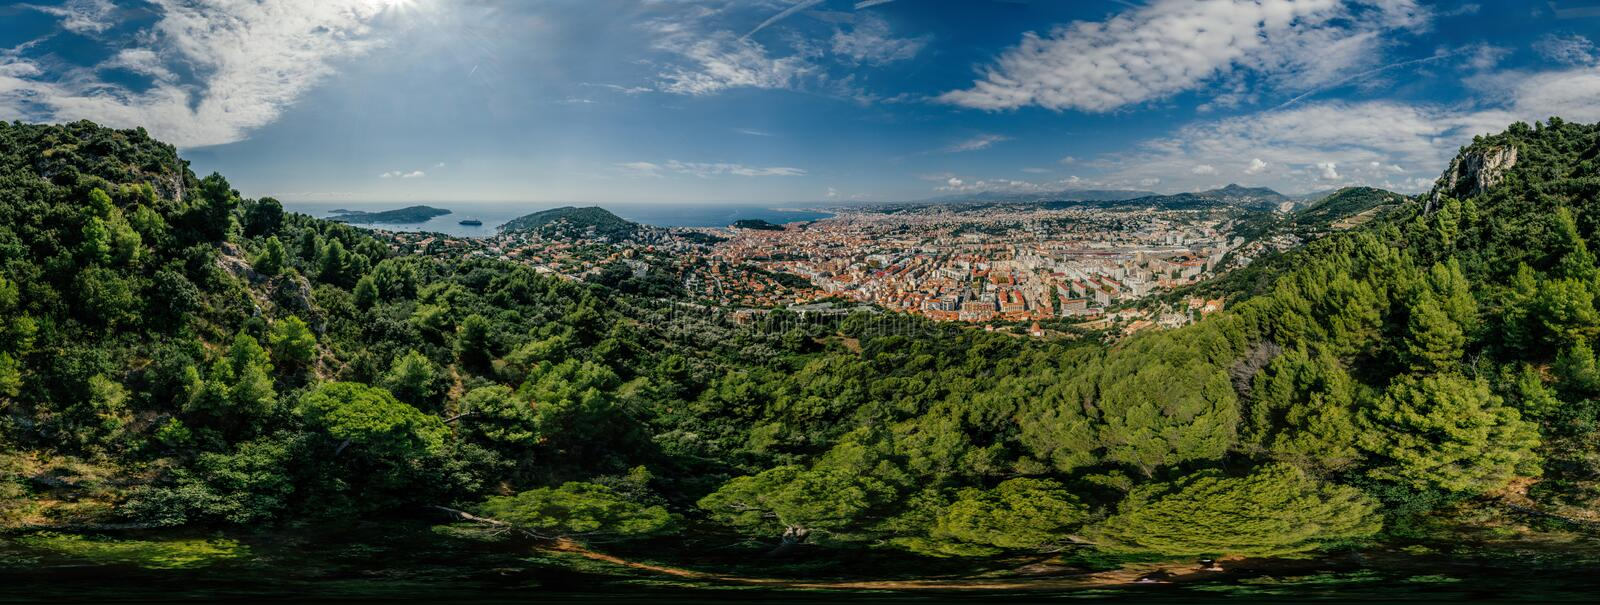 Nice city in the south of France on the azure coast drone Air 360 vr virtual reality drone panorama royalty free stock images